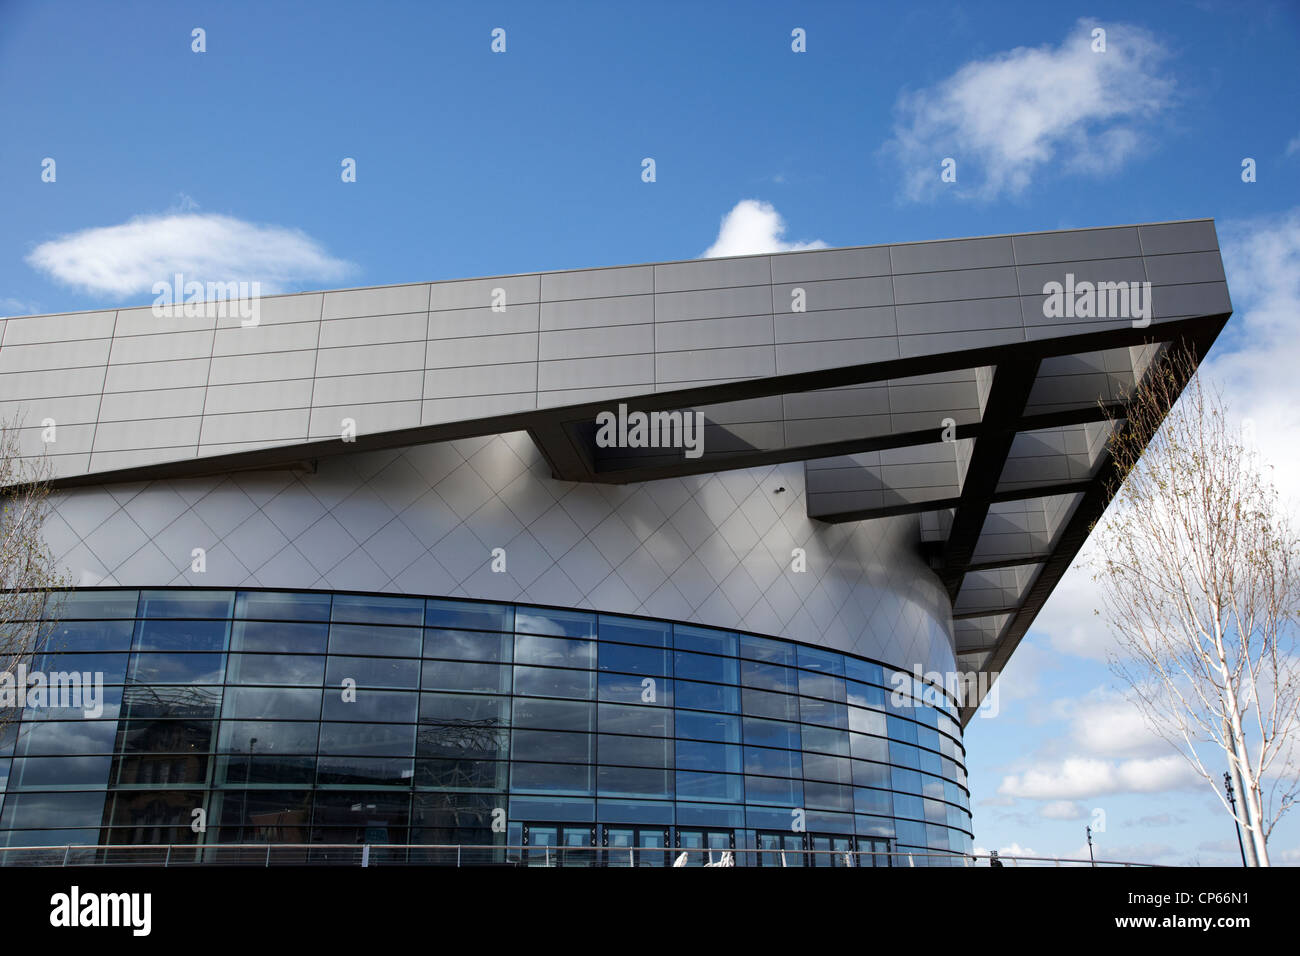 emirates arena former Commonwealth arena and Sir Chris Hoy Velodrome Glasgow Scotland UK - Stock Image